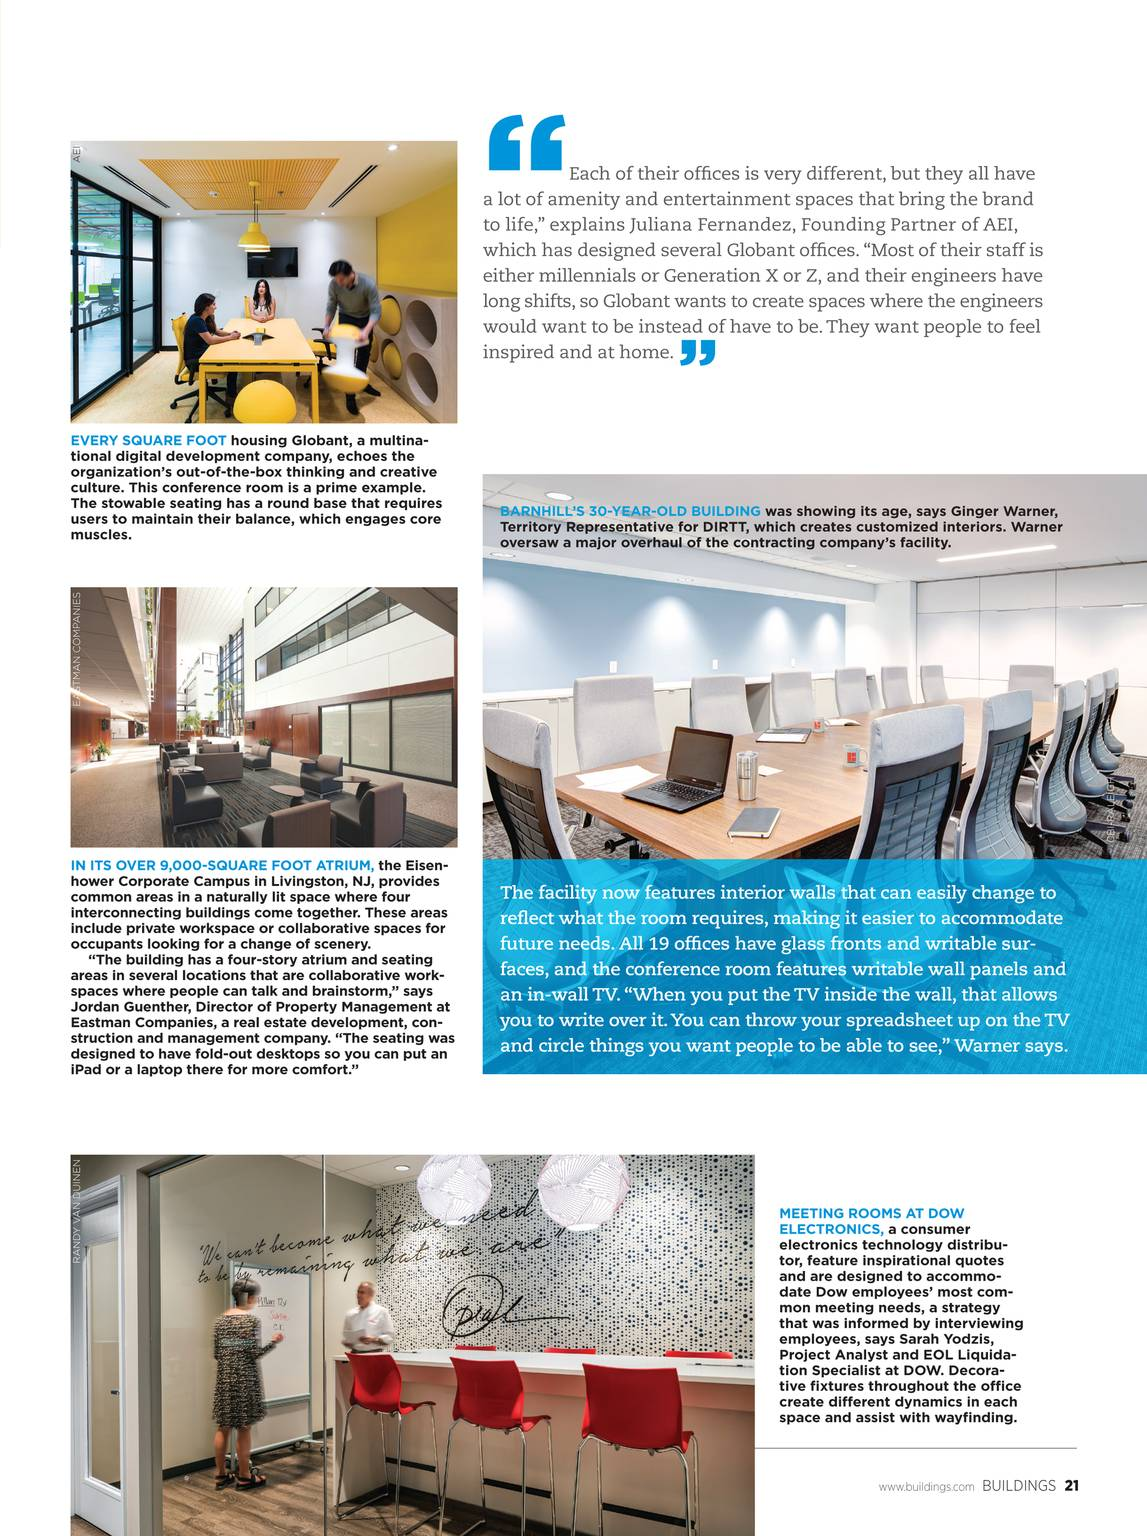 Buildings Magazine May 2017 Page 21